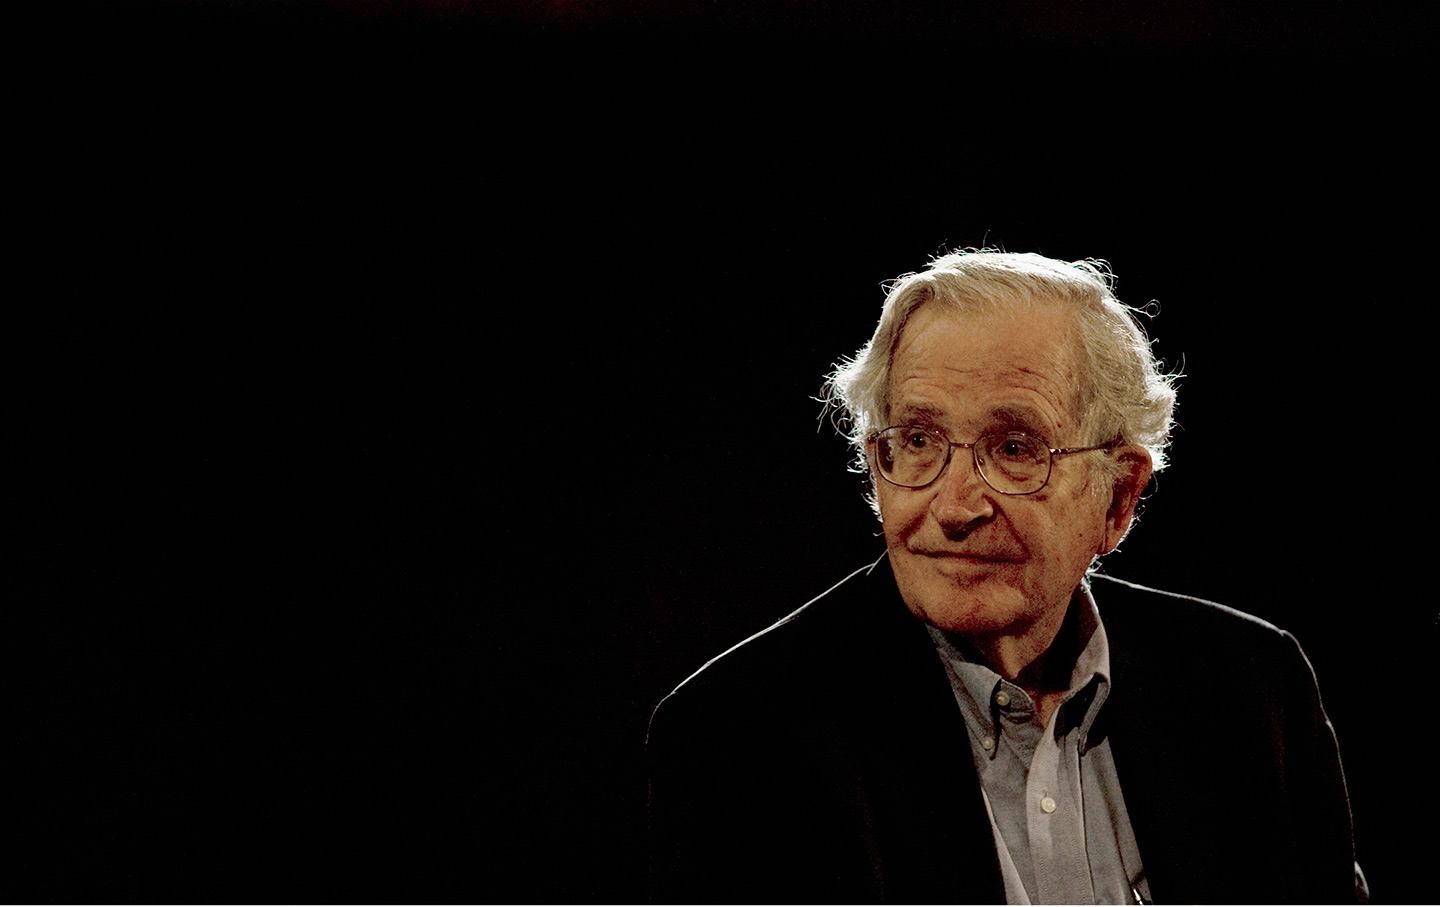 noam chomsky diagnoses the trump era the nation noam chomsky addresses the audience at the national autonomous university s educational investigation institute in city reuters jorge dan